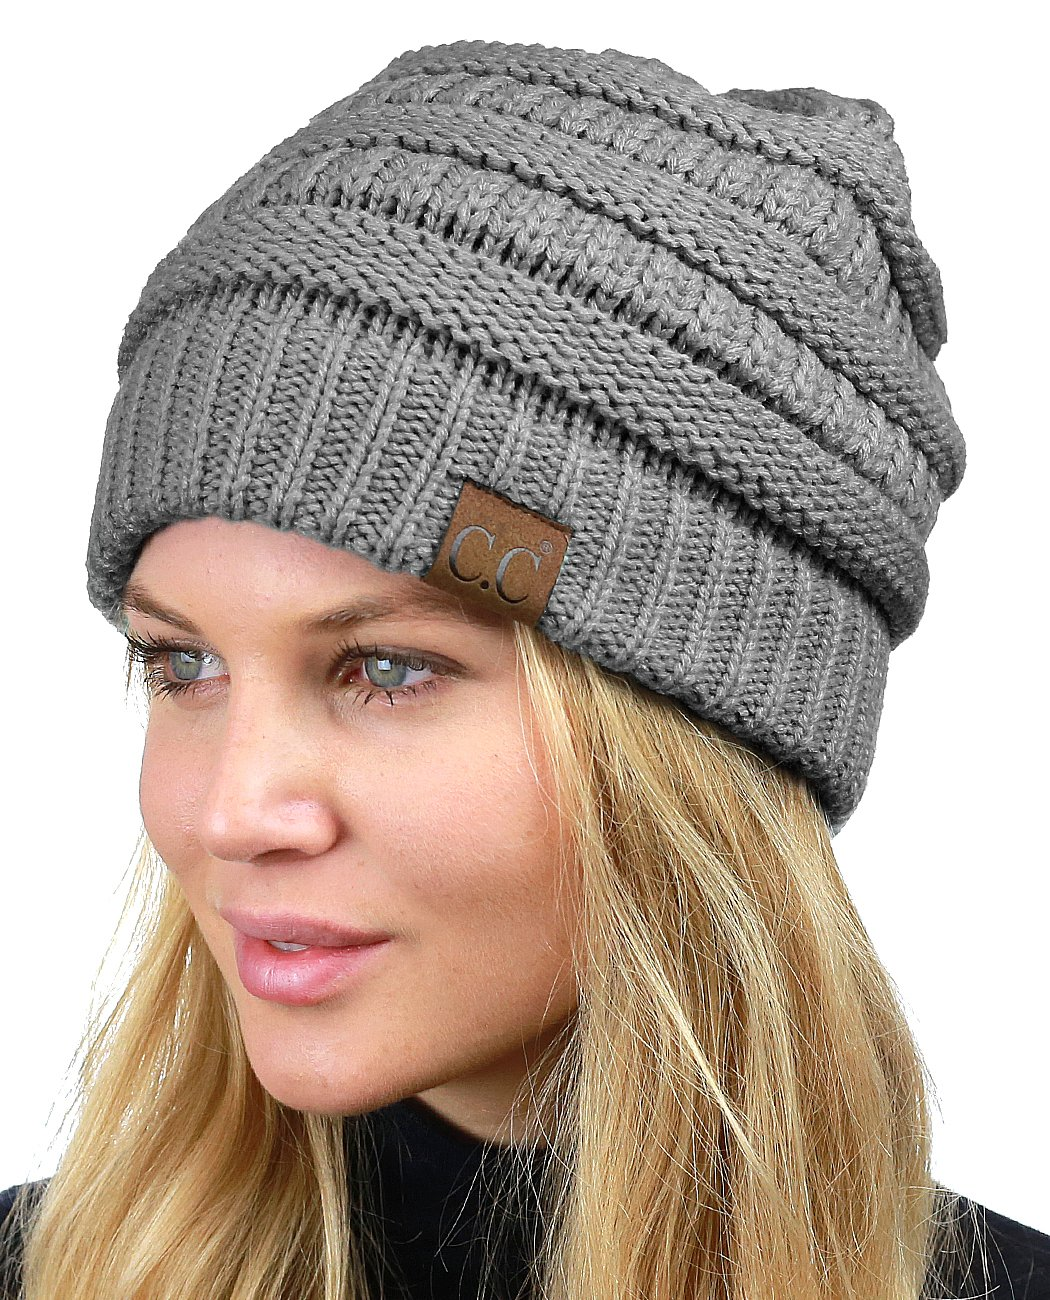 C.C Unisex Chunky Soft Stretch Cable Knit Warm Fuzzy Lined Skully Beanie, Light Melange Gray by C.C